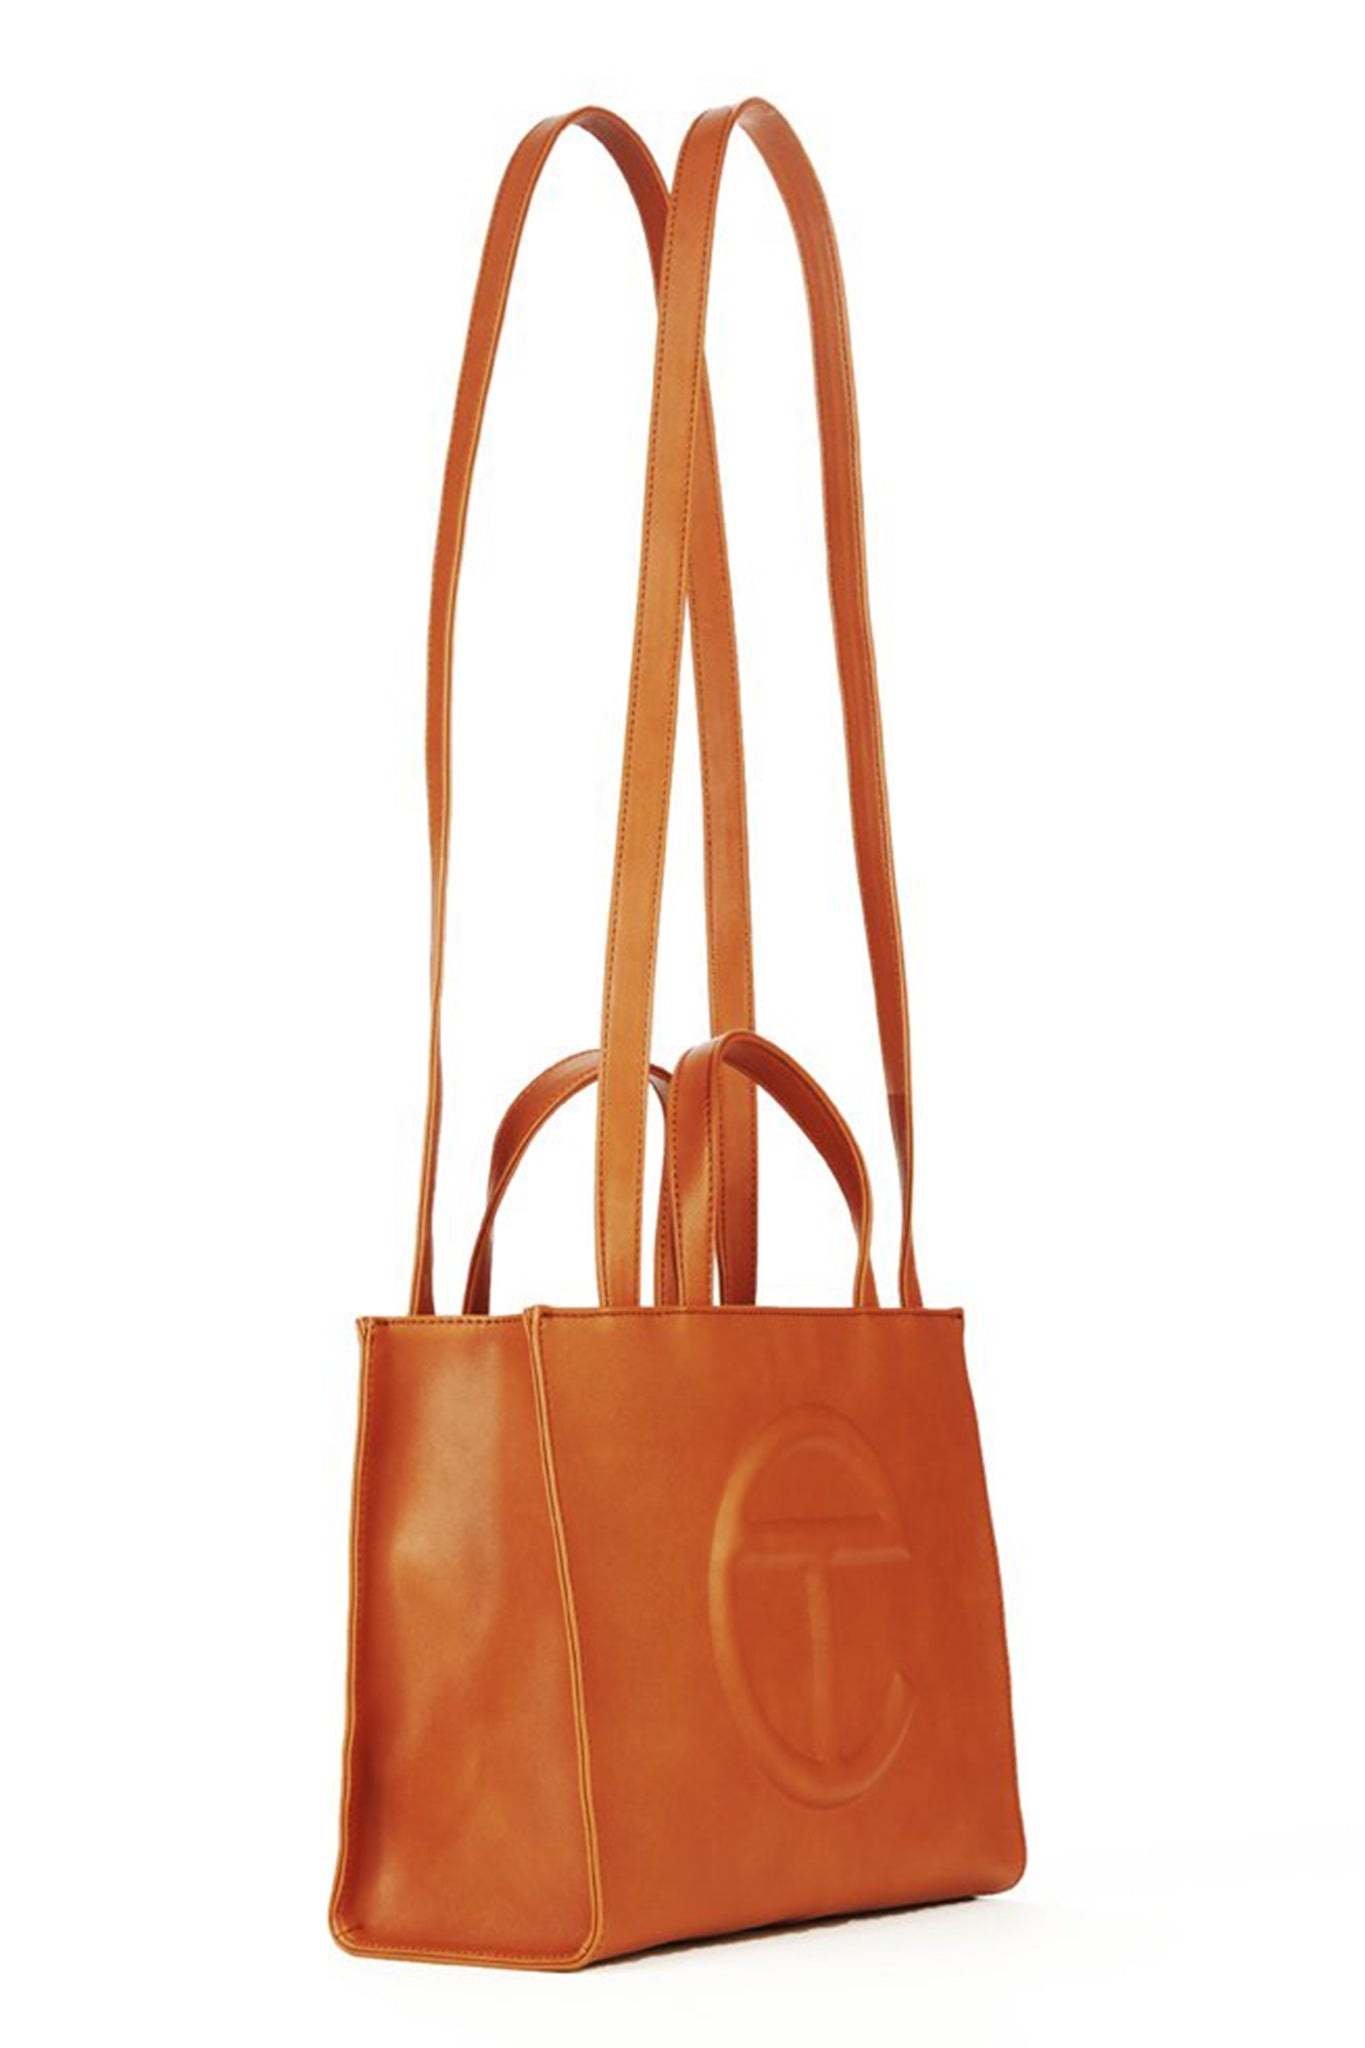 Telfar Medium Shopping Bag, Tan